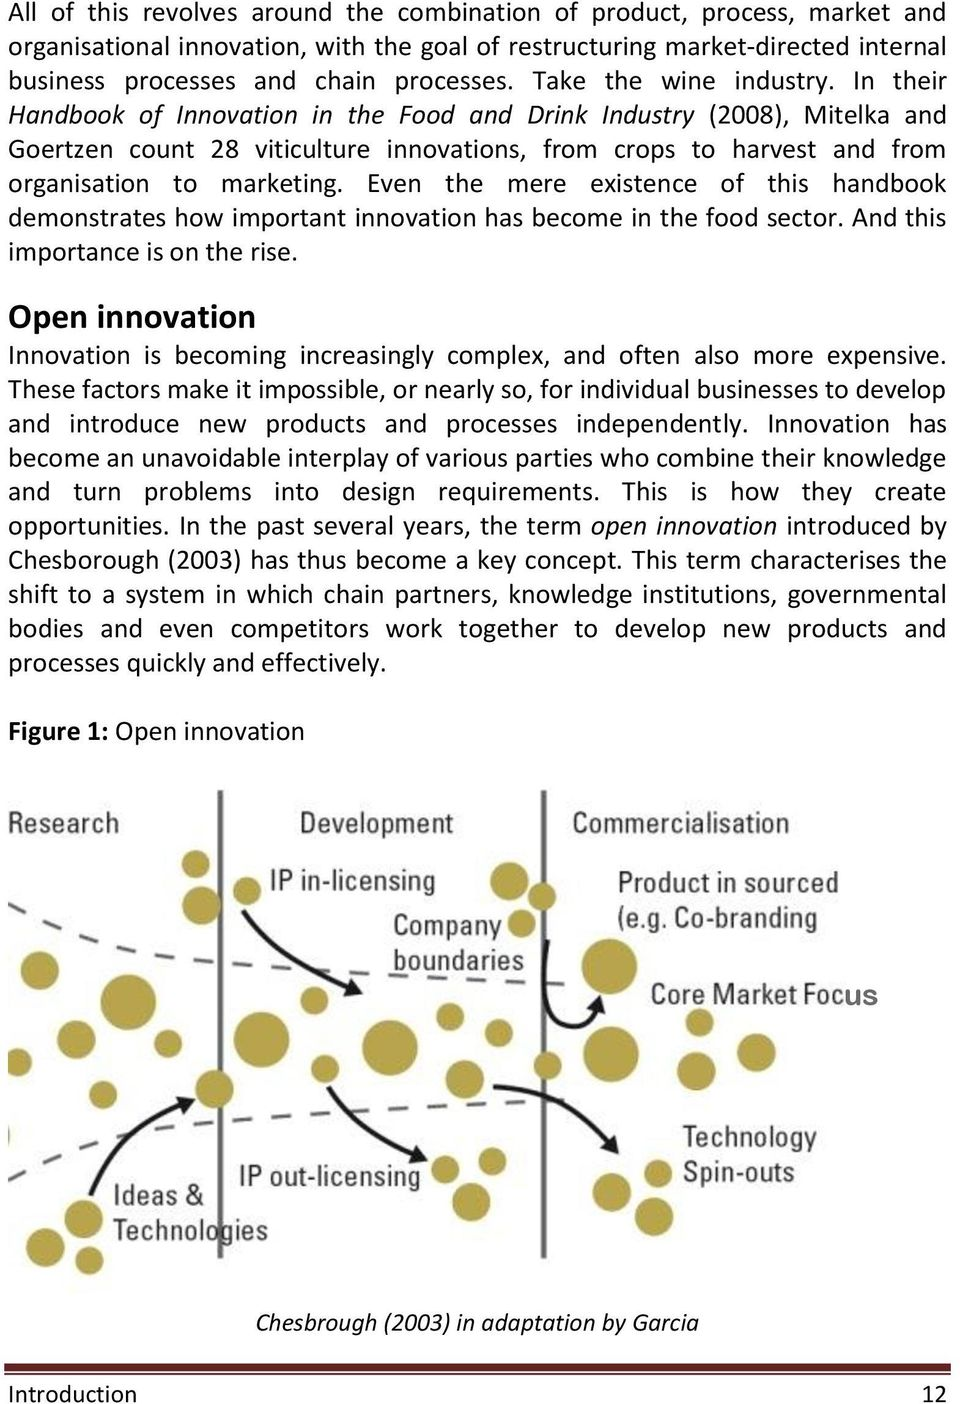 In their Handbook of Innovation in the Food and Drink Industry (2008), Mitelka and Goertzen count 28 viticulture innovations, from crops to harvest and from organisation to marketing.